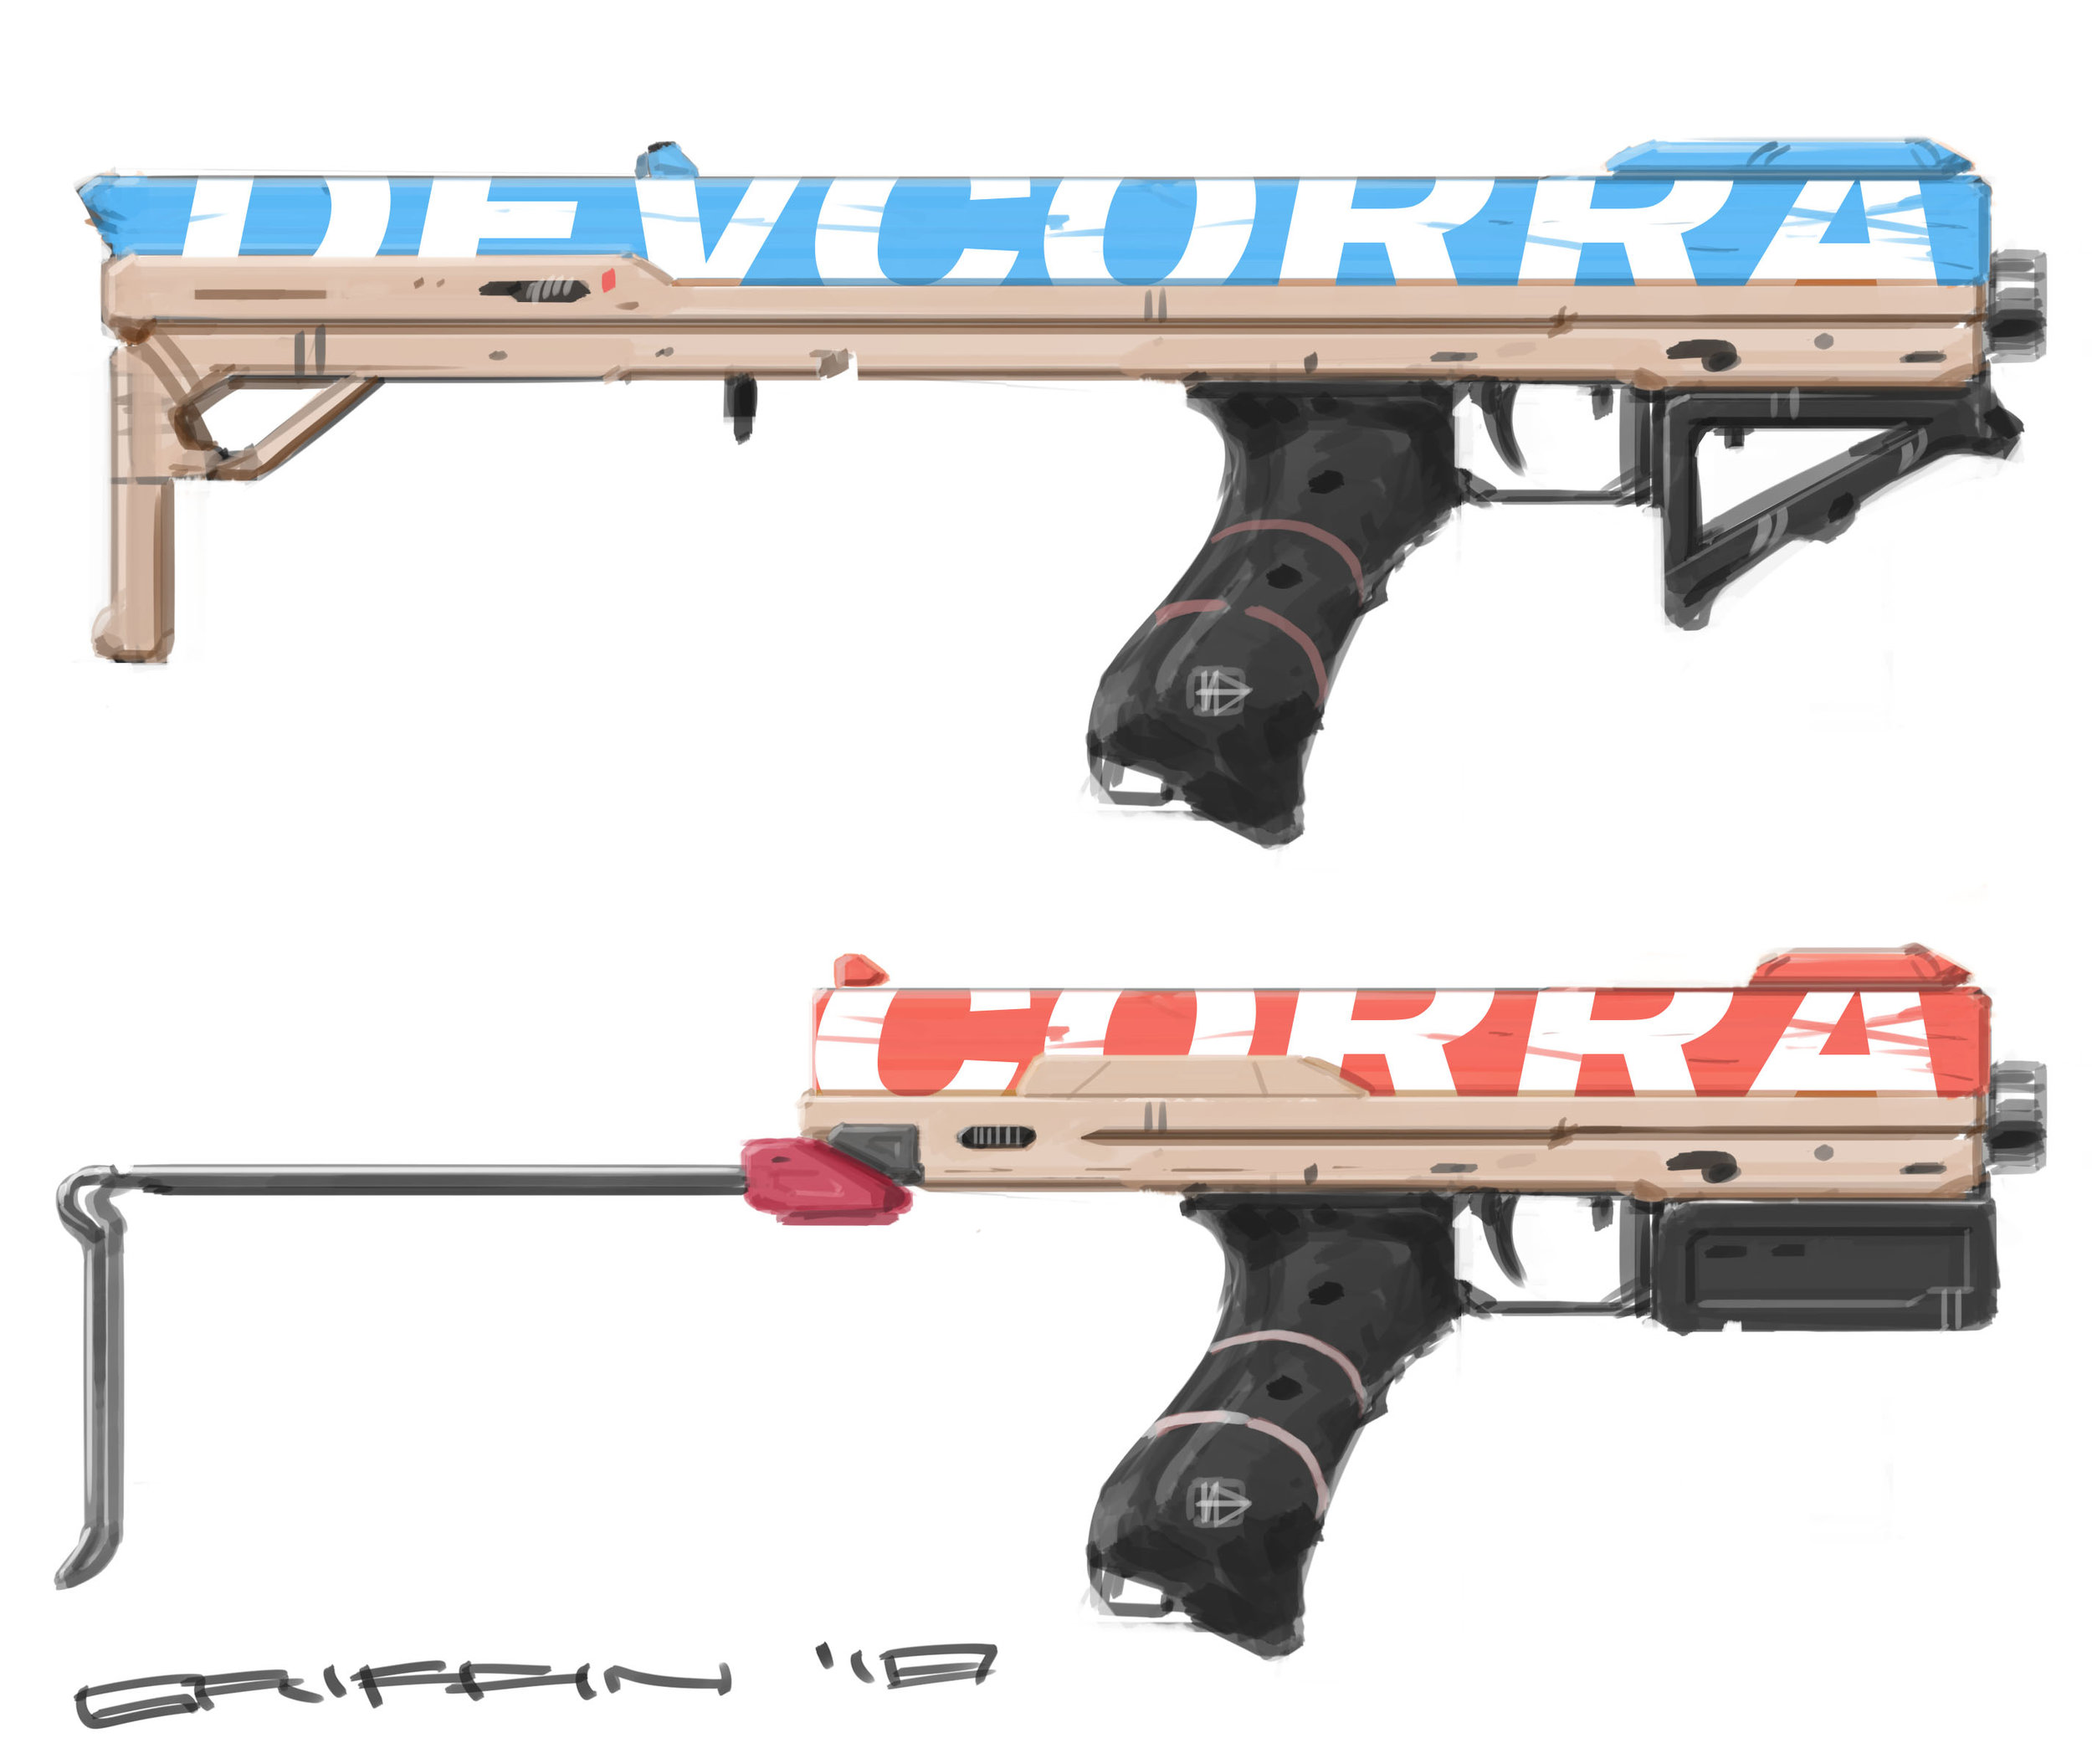 Machinepistols - a, b - DEVCORRA serves as the umbrella brand who manufactures a line of urban, high-capacity weapons in my world. Colors have different connotations. The idea is color indicates ammo type. Capacities range from 40-70 caseless rounds.